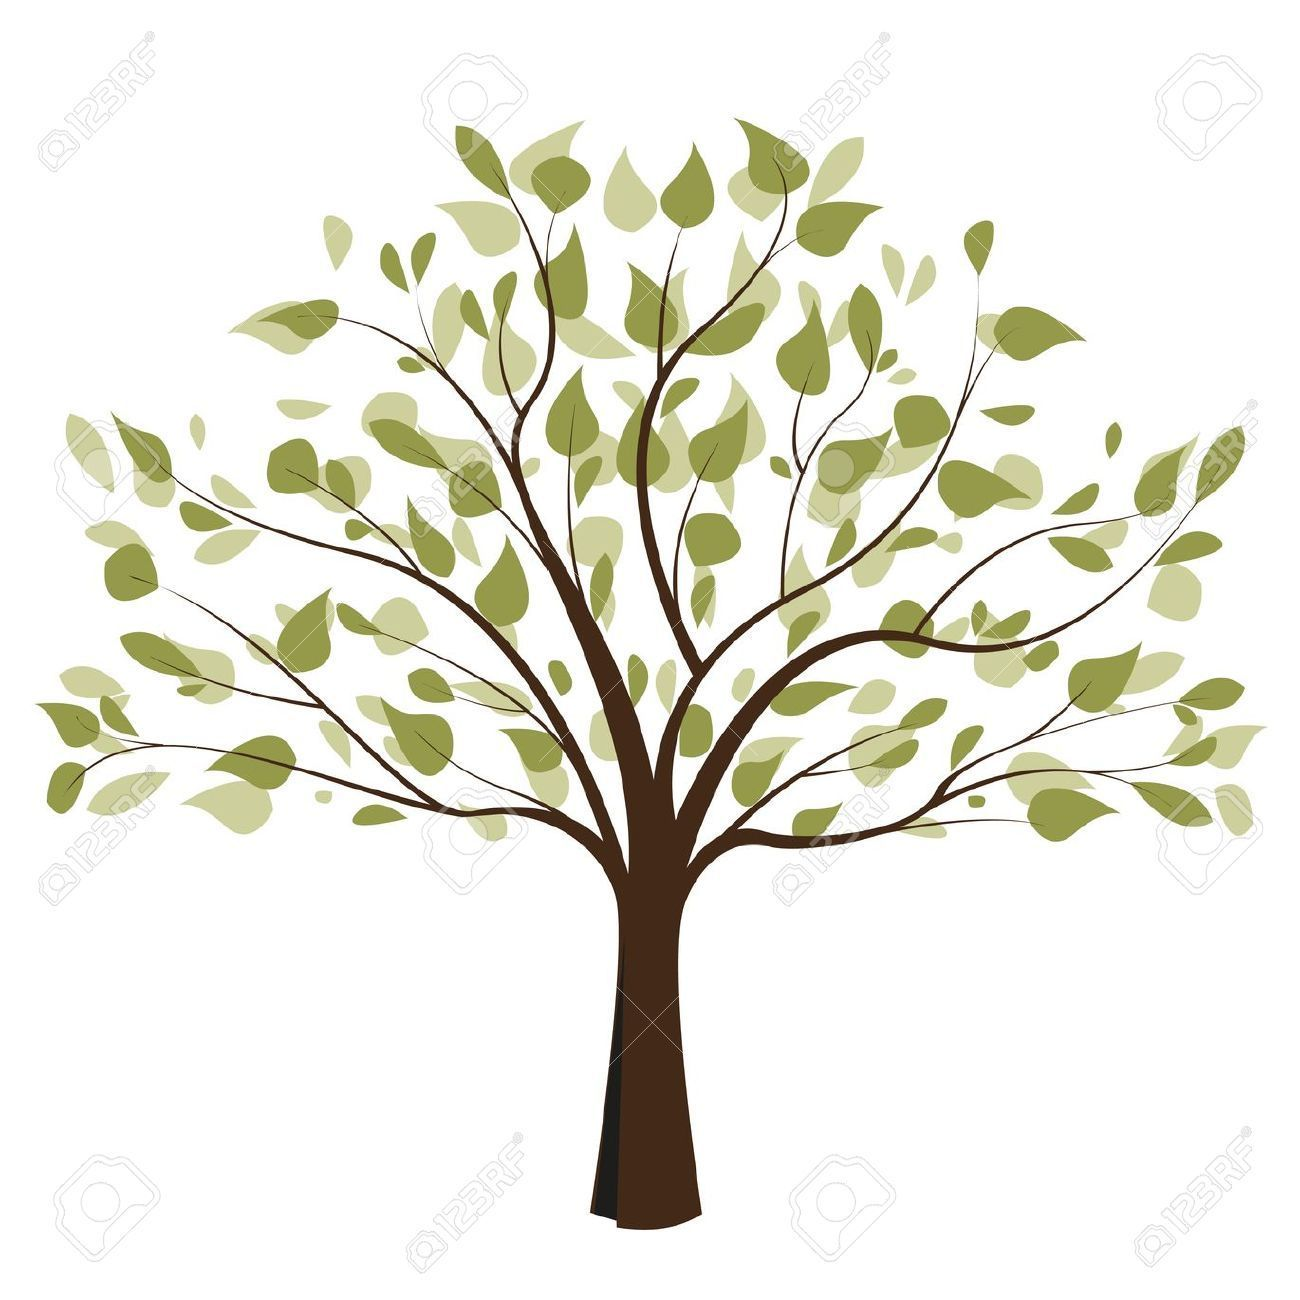 Tree of life black and white clipart 6 » Clipart Portal.